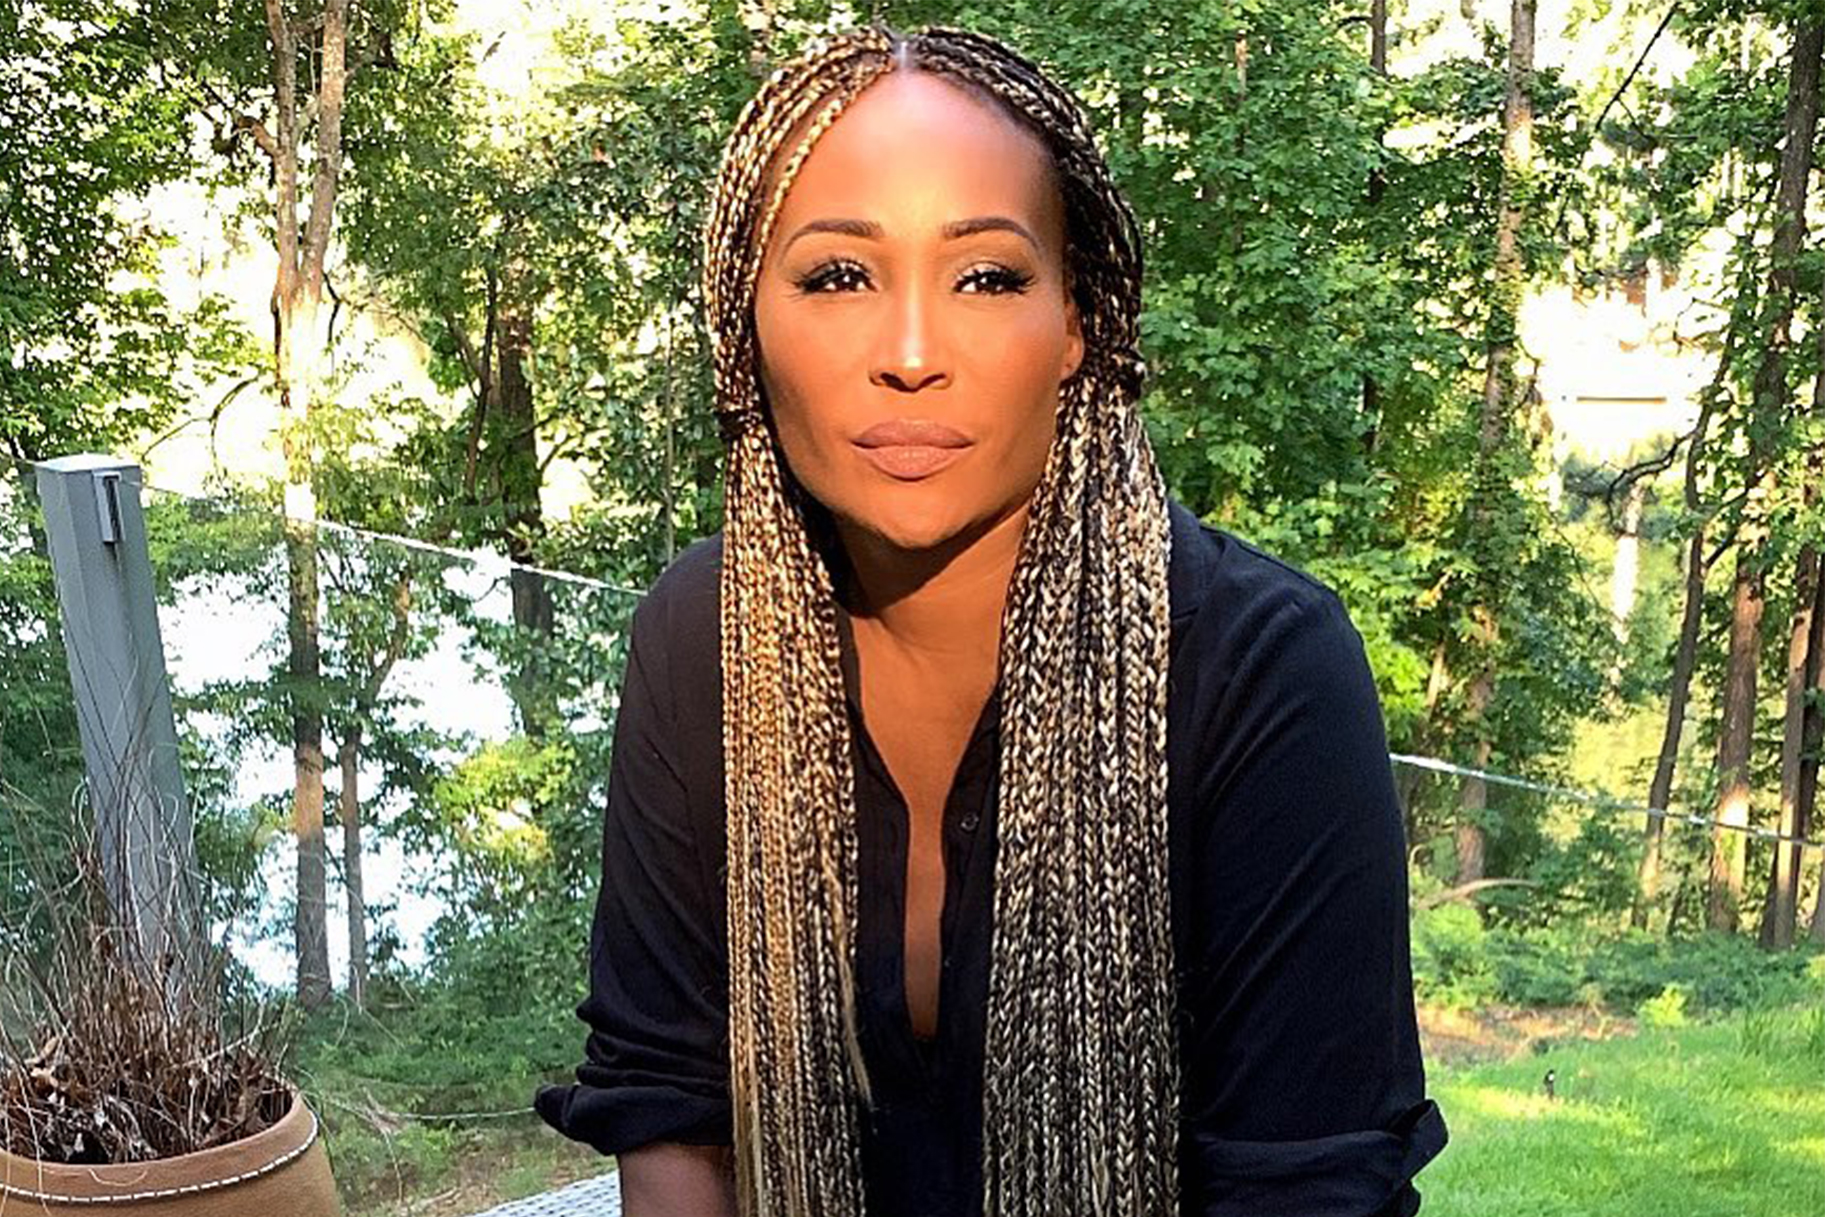 cynthia-bailey-has-the-most-relaxing-time-at-the-lake